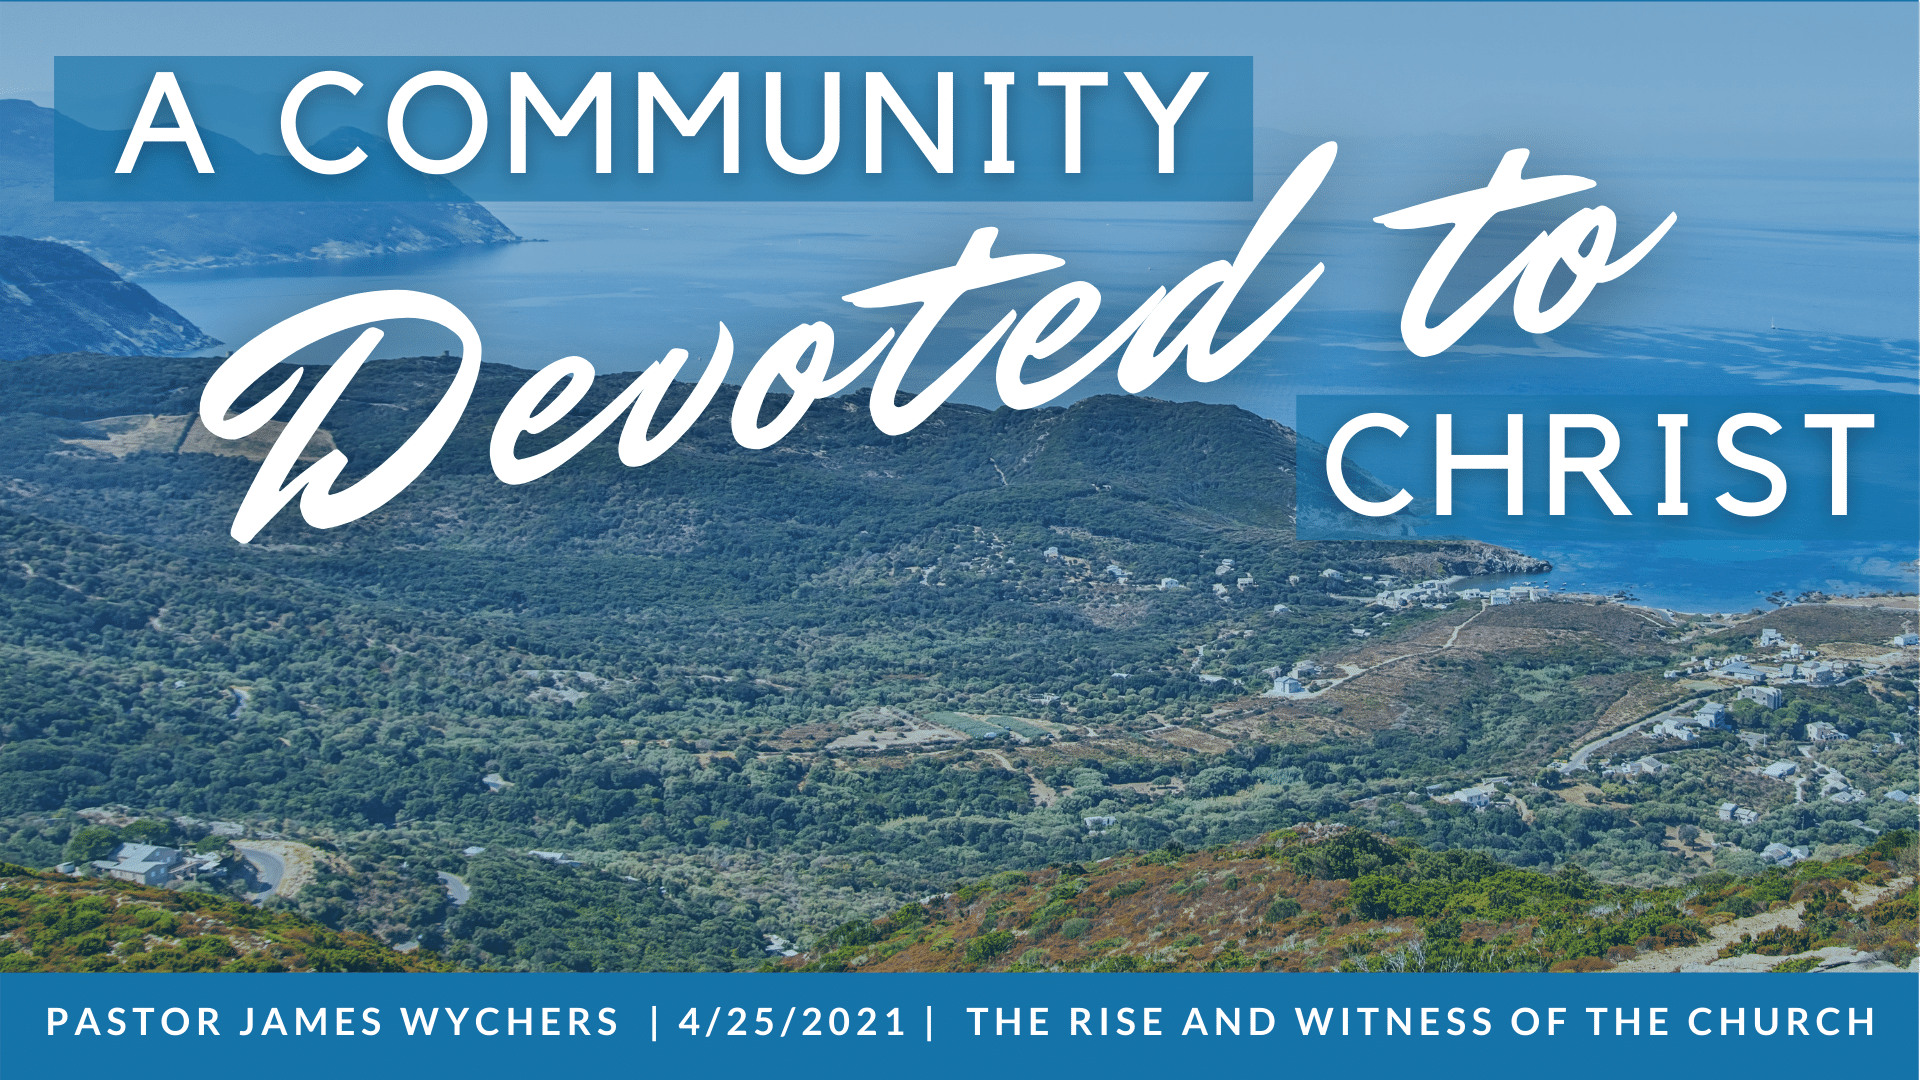 A Community Devoted to Christ